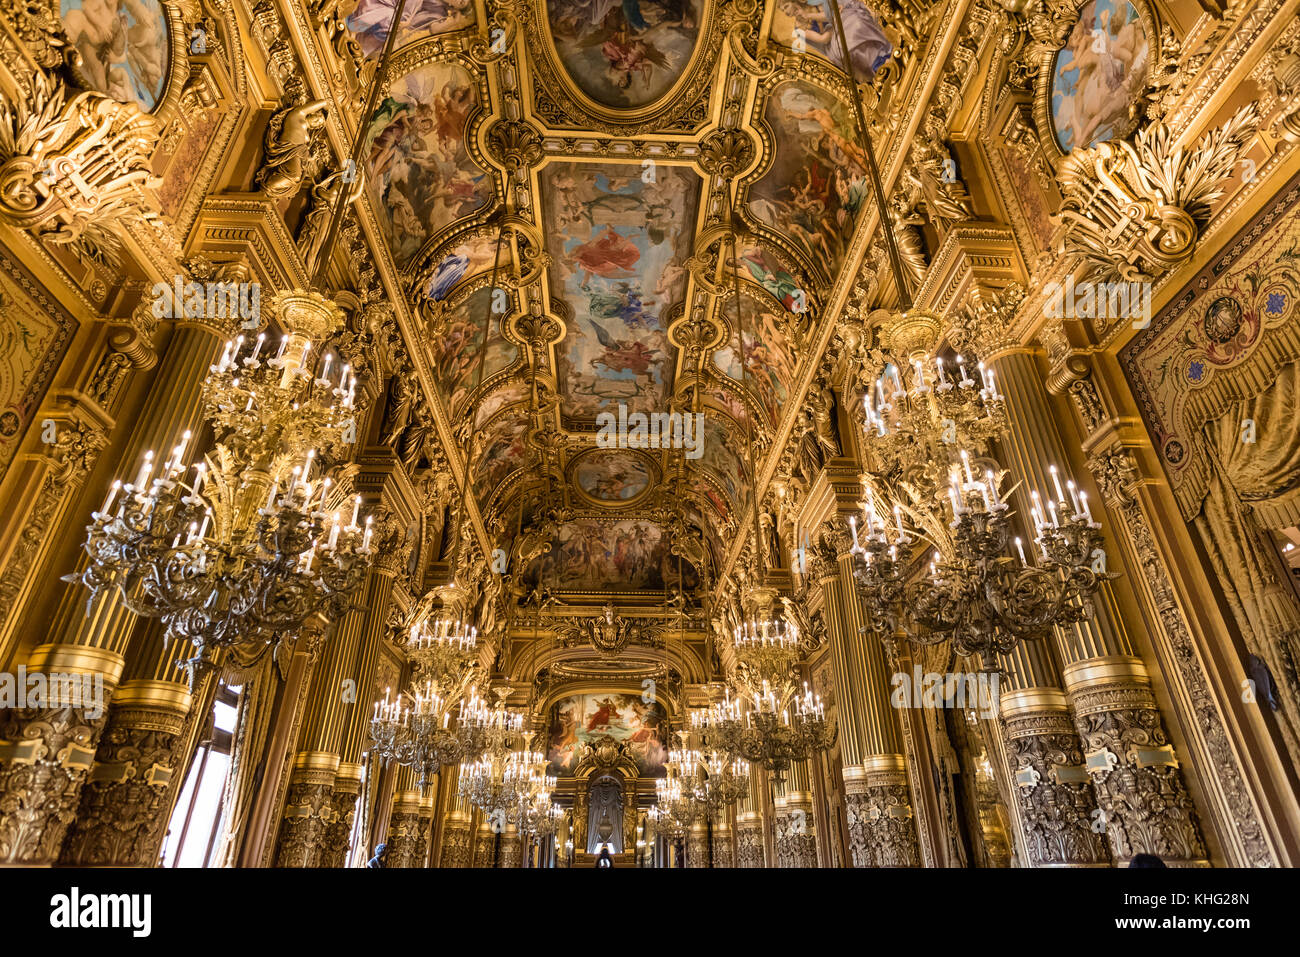 Ornate ceilings of the grand foyer of Palais Garnier, opera of Paris - Stock Image